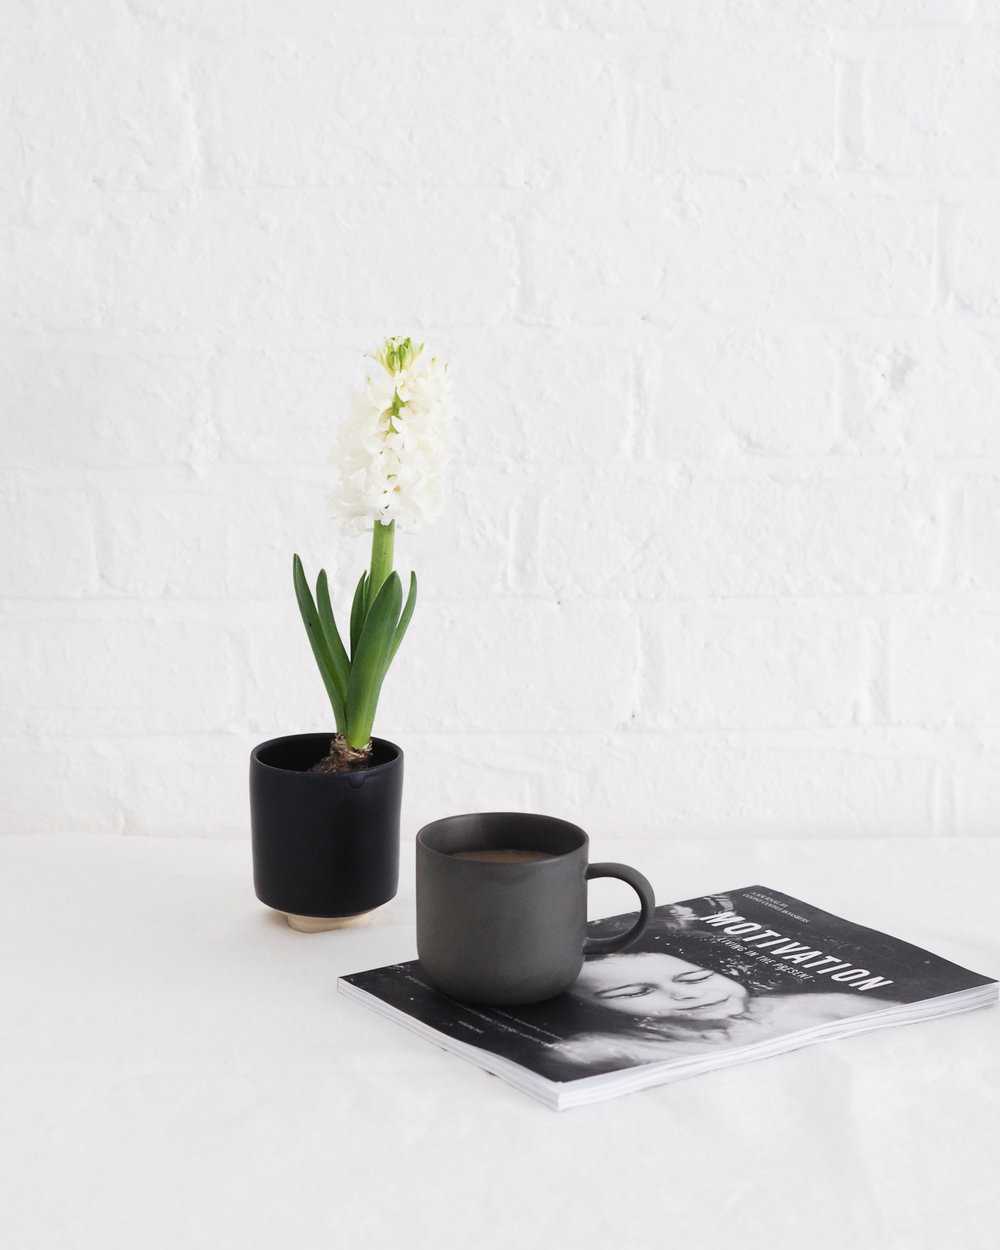 Tea and hyacinth | Design Hunter